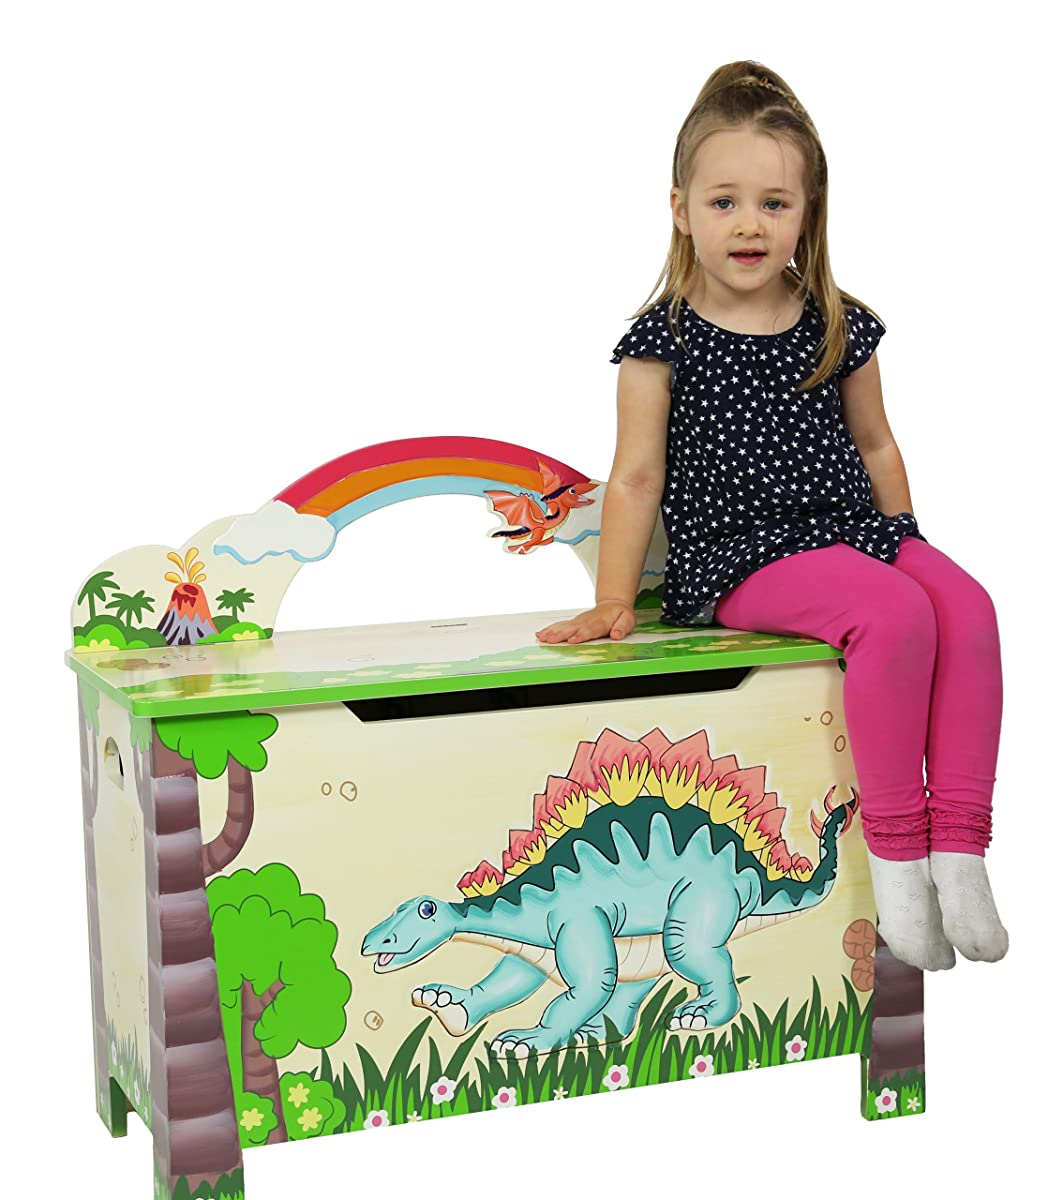 Dinosaur Kingdom Thematic Kids Wooden Toy Chest